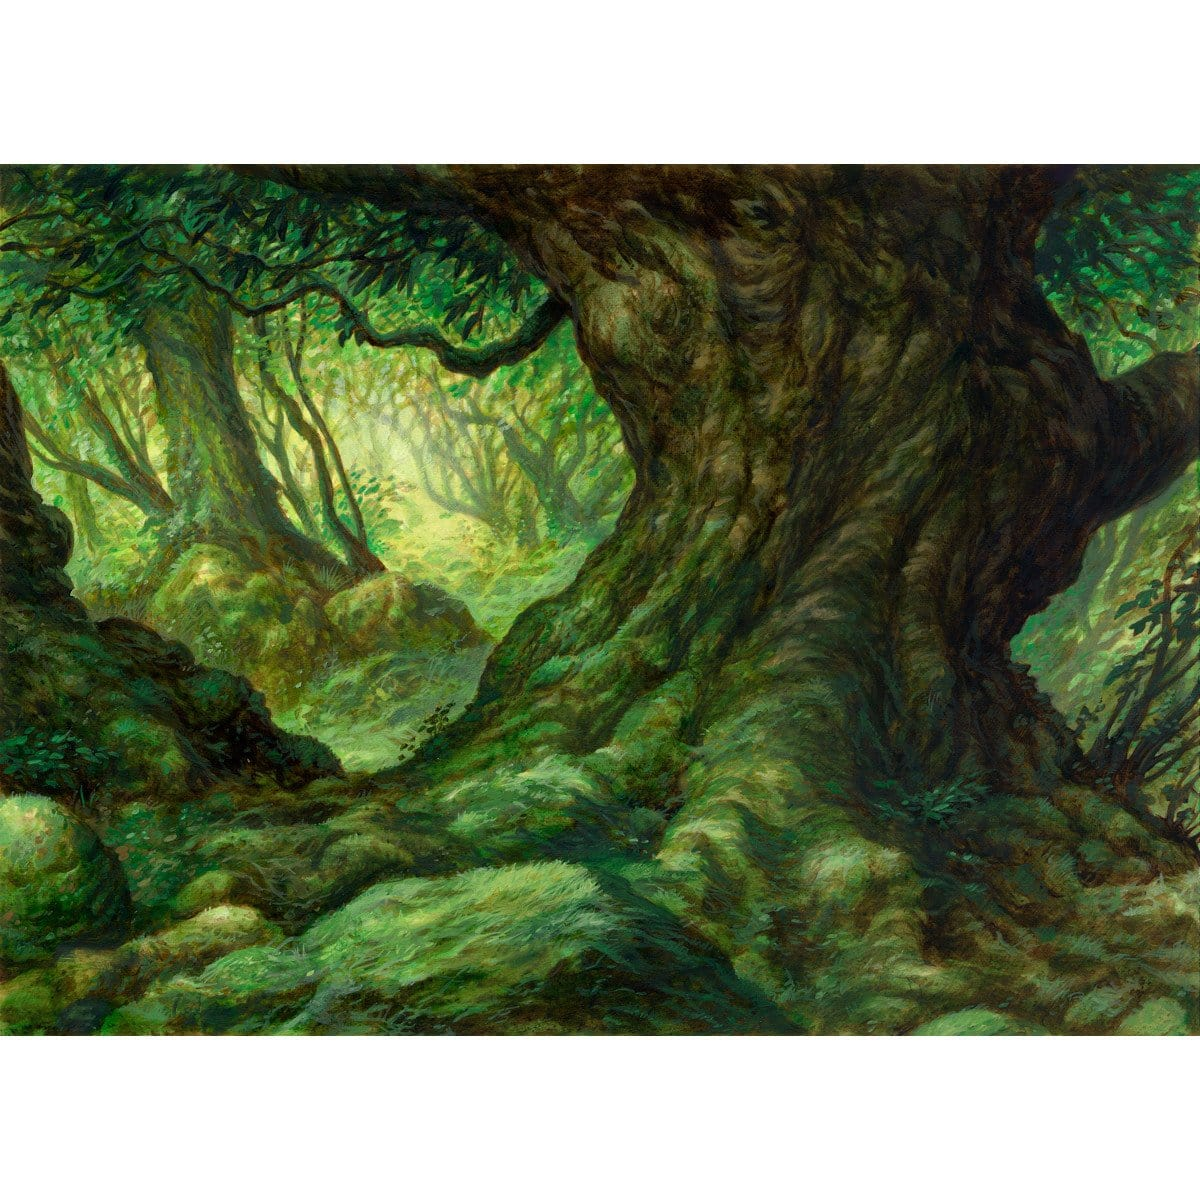 Forest Print - Print - Original Magic Art - Accessories for Magic the Gathering and other card games